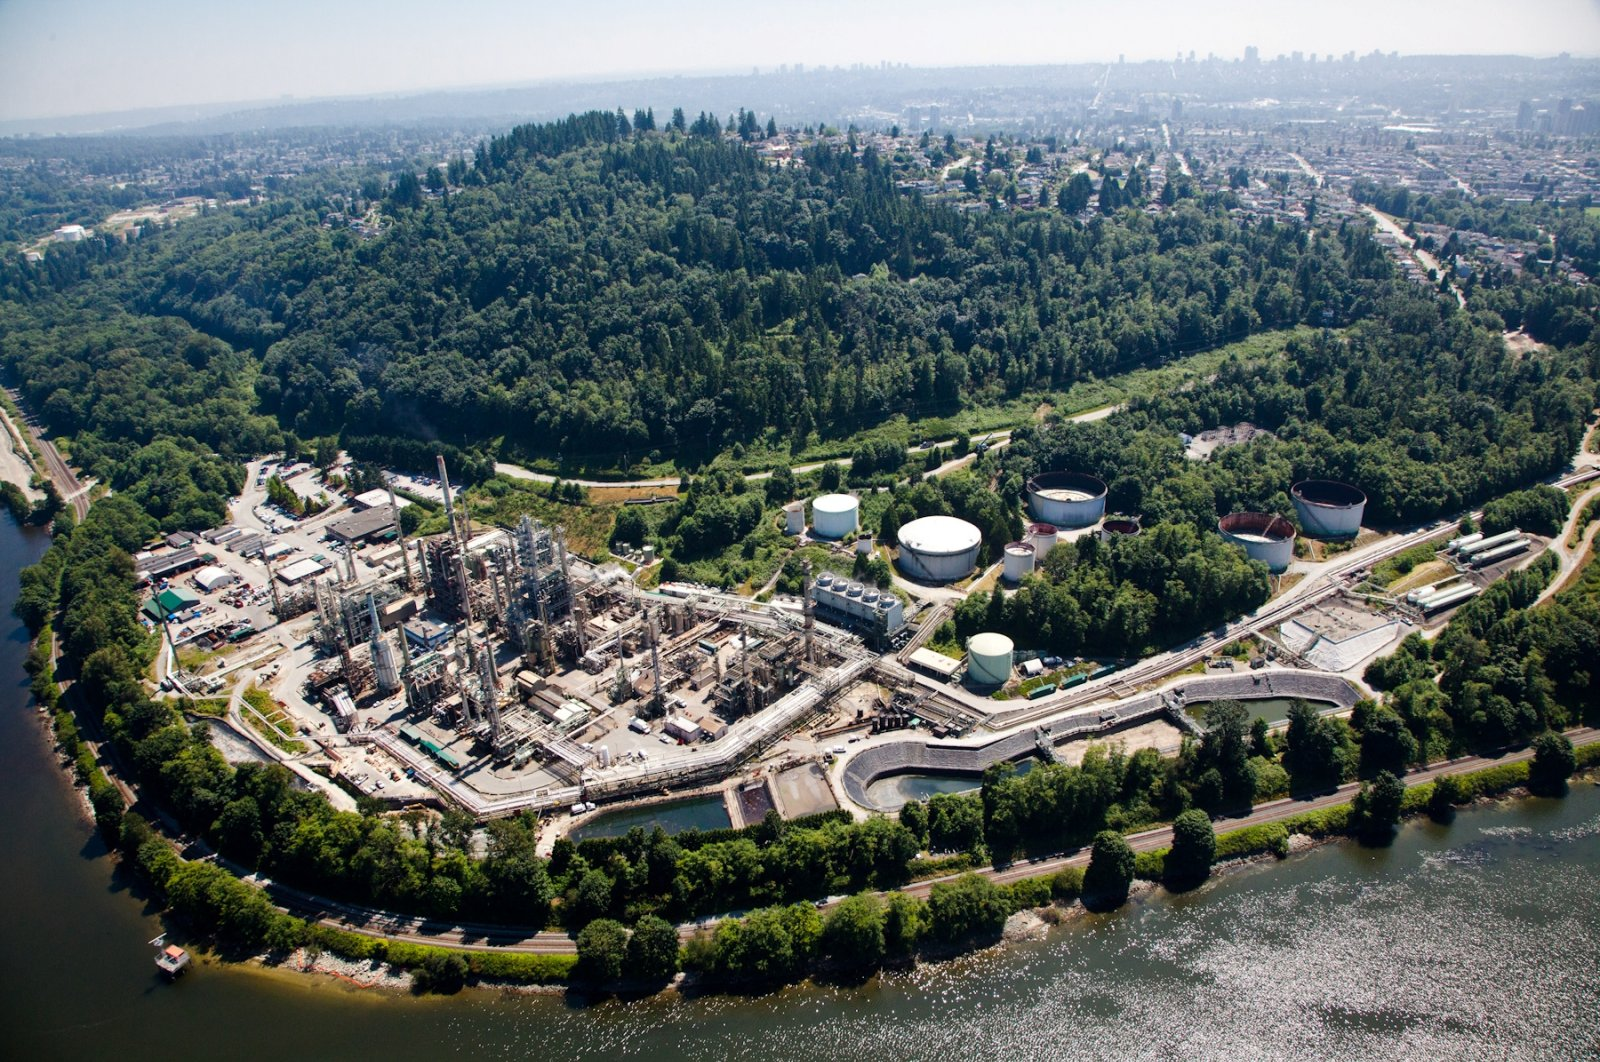 Parkland Corp's refinery, which includes production of renewable diesel, is seen in an undated aerial photograph in Burnaby, British Columbia, Canada. (Photo by Parkland Burnaby Refinery via Reuters )